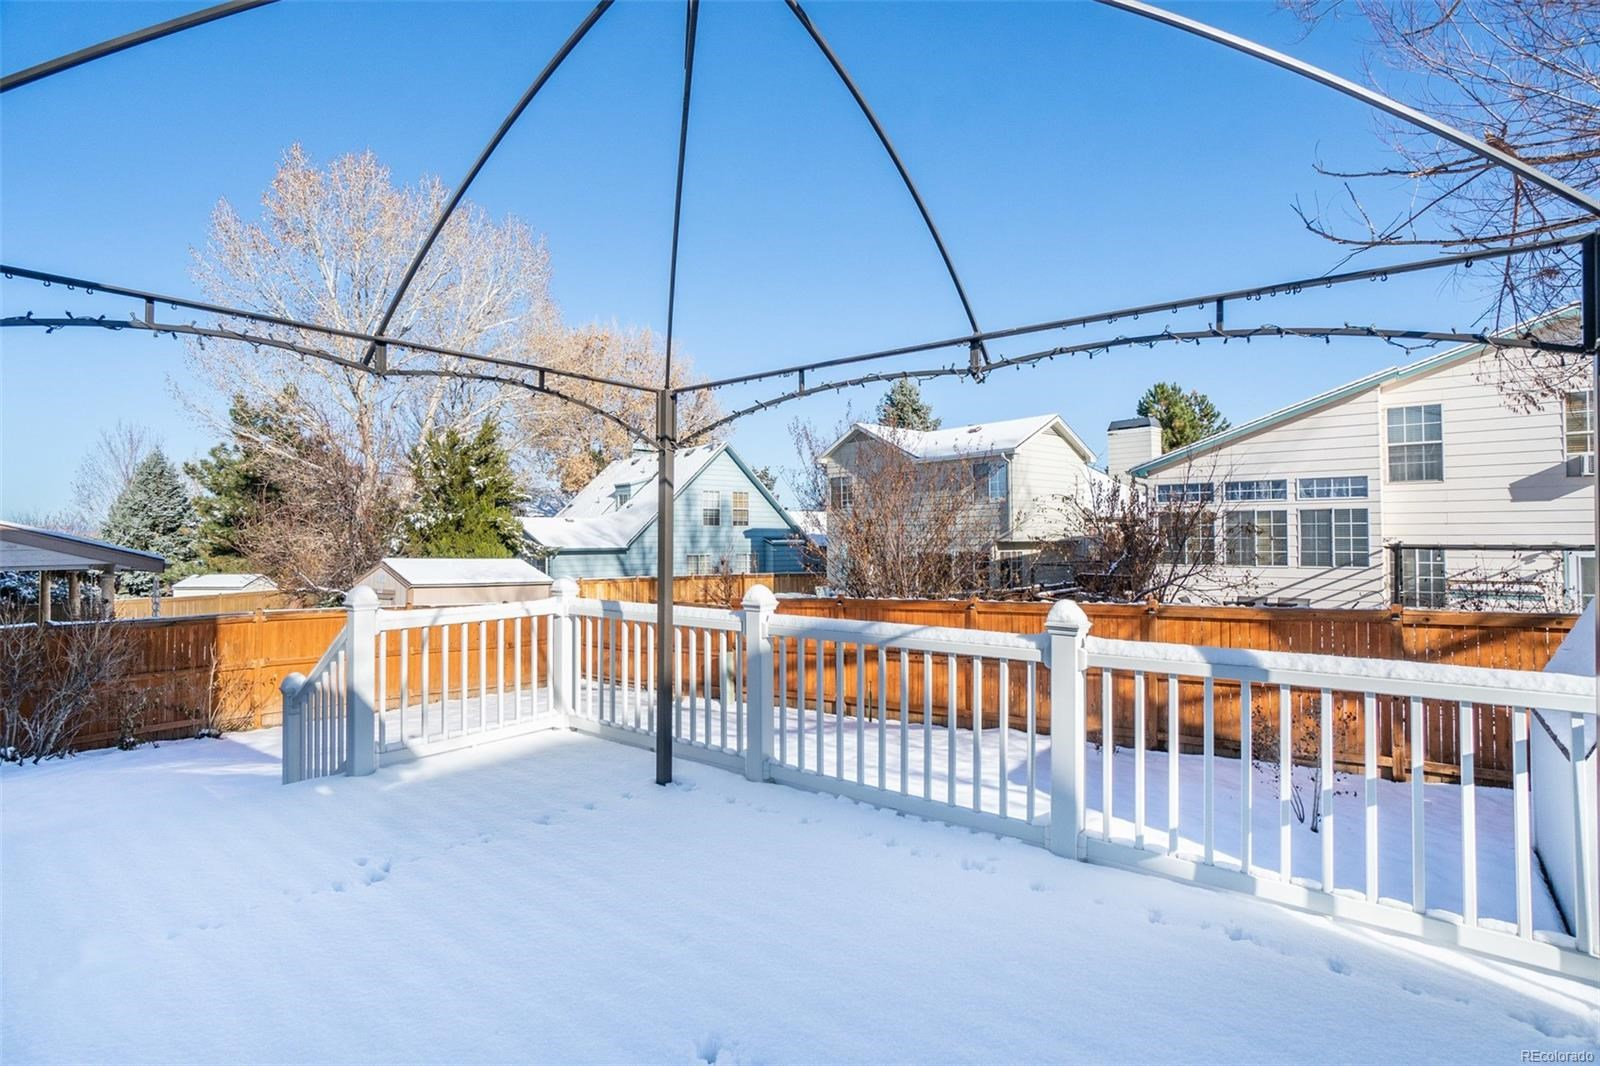 MLS# 4661252 - 5 - 4666 N Wildflowers Way, Castle Rock, CO 80109